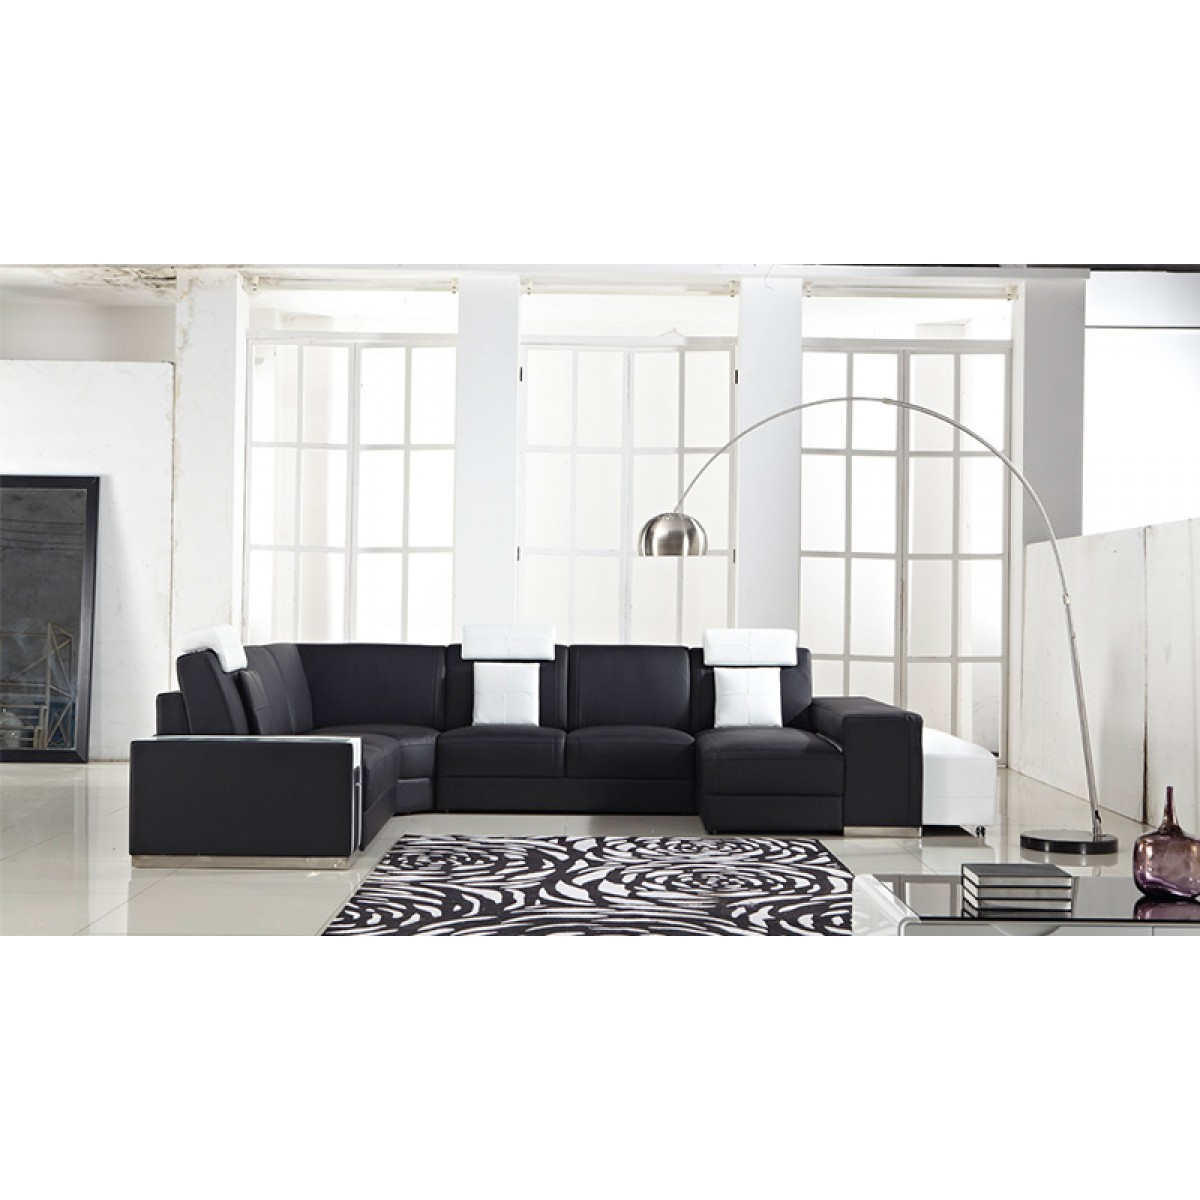 canape d angle avec pouf maison design. Black Bedroom Furniture Sets. Home Design Ideas